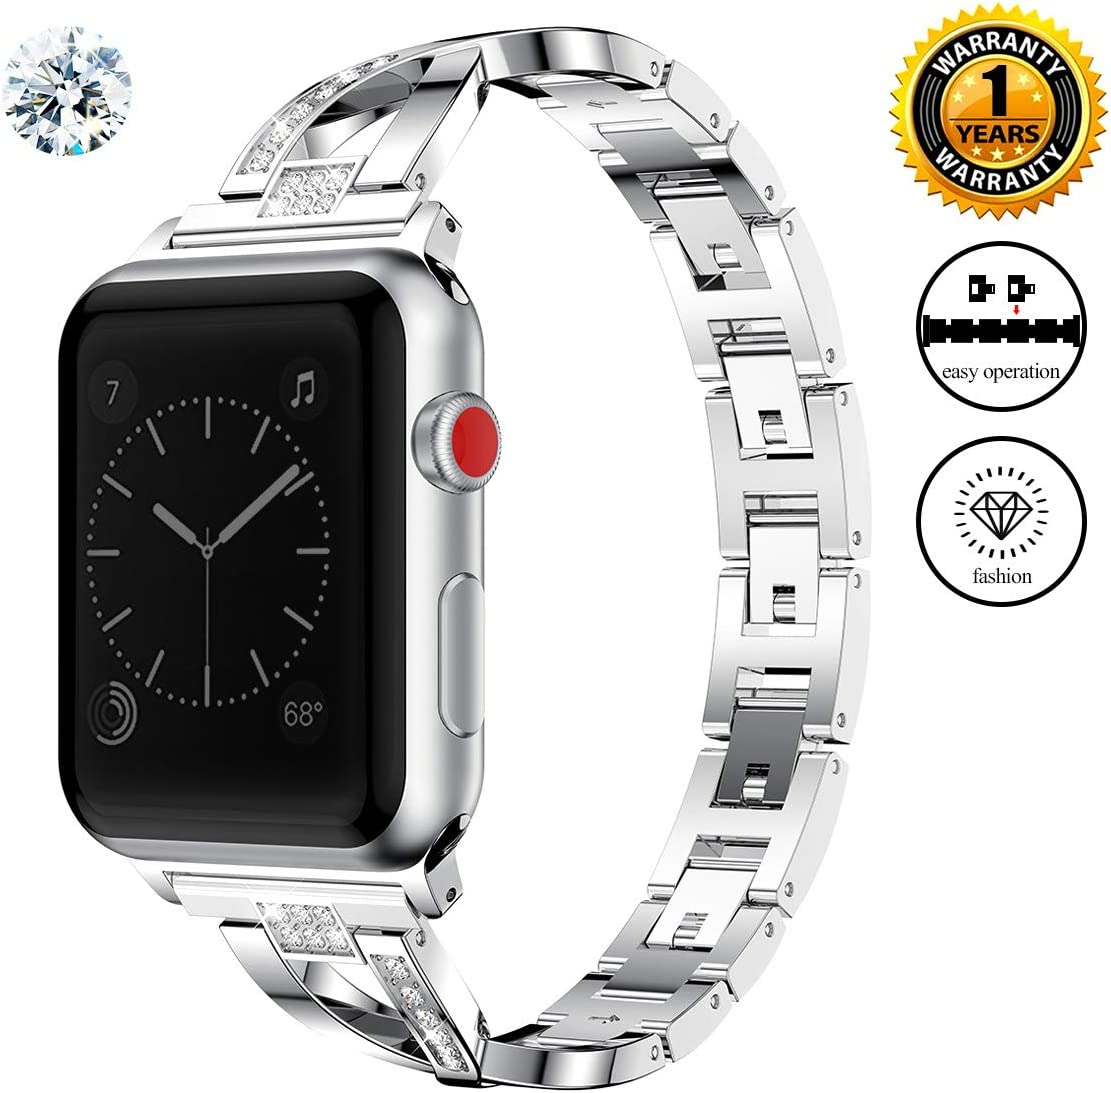 Jomoq Bling Replacement Bands Compatible for Apple Watch Band 38mm 40mm 42mm 44mm Women Iwatch Series 4 3 2 1 Accessories Stainless Steel Wristband, Diamond Rhinestone Sport Strap (small, Silver)